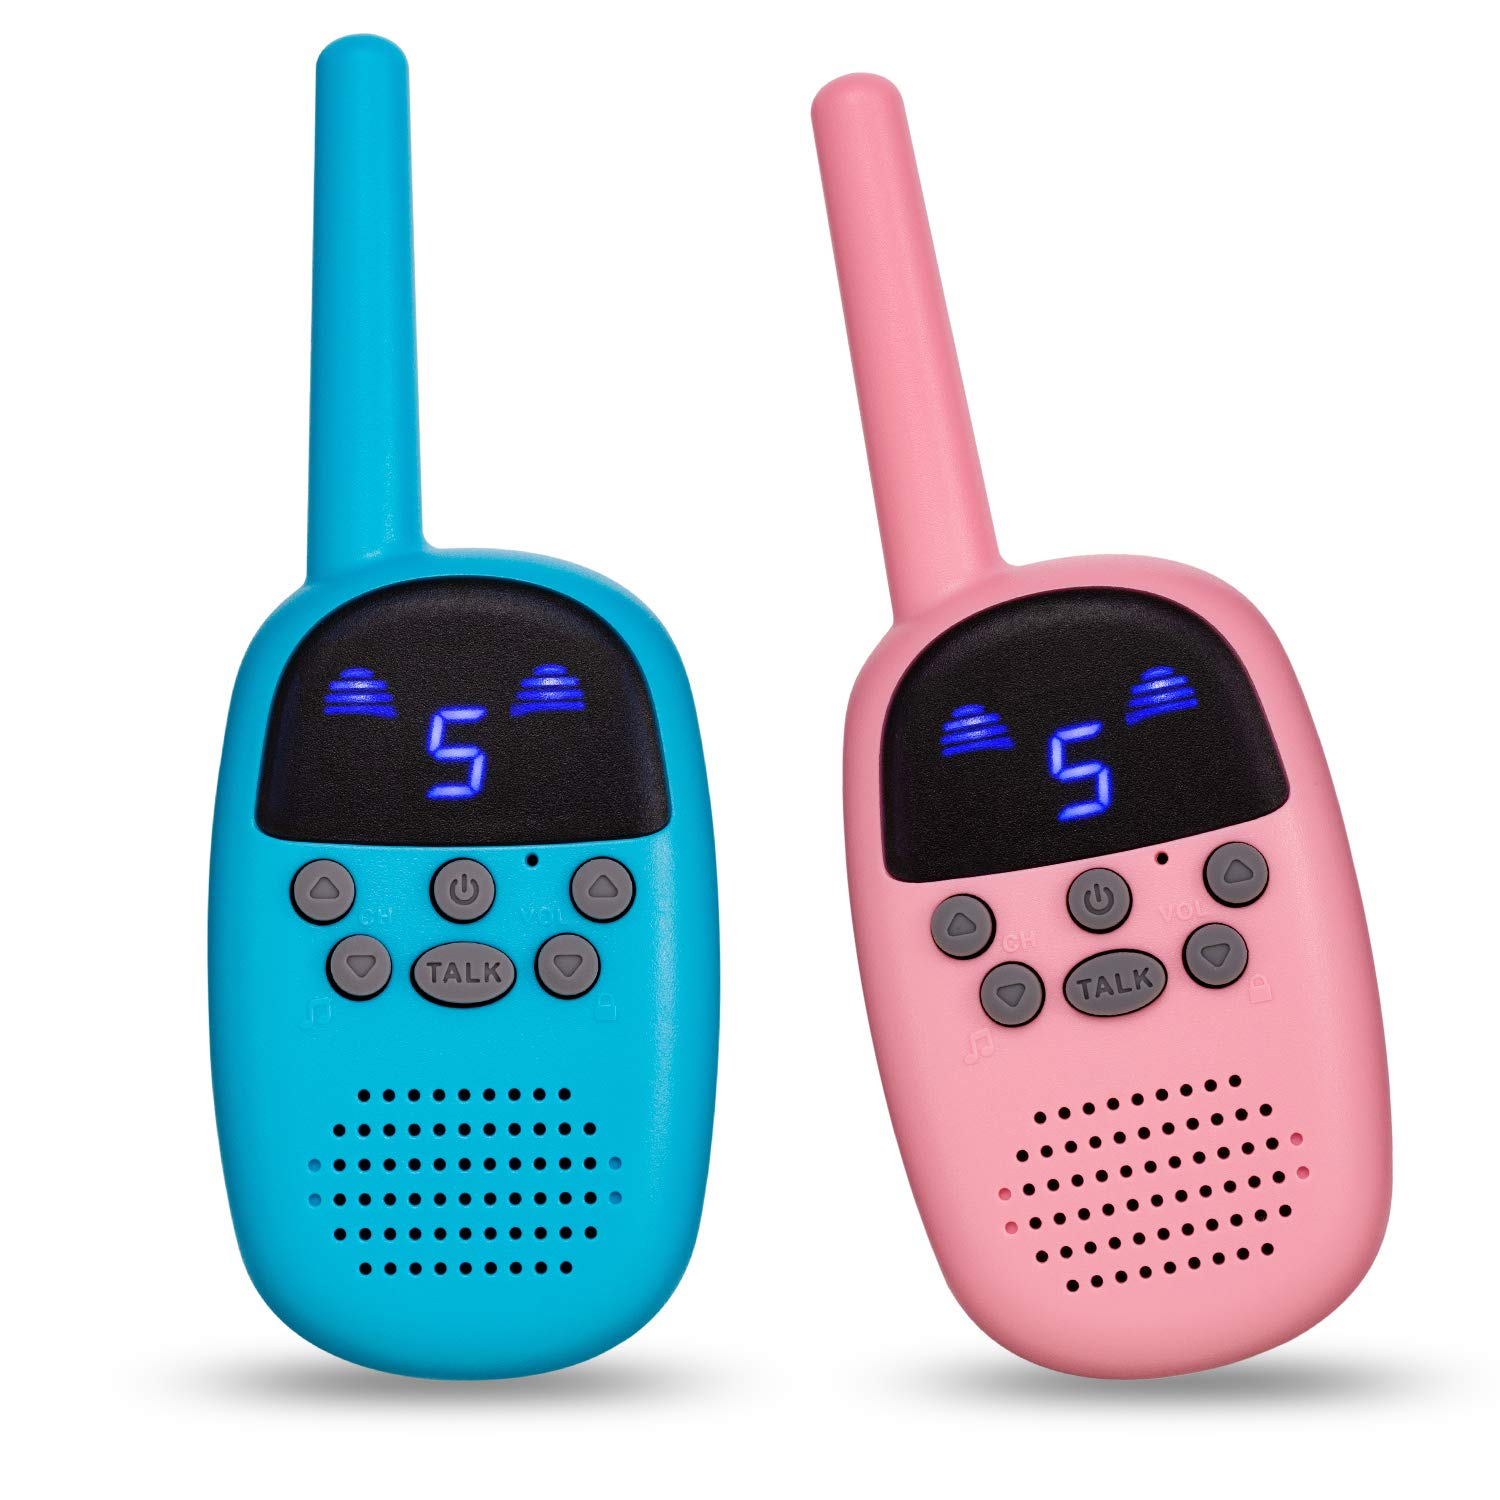 omzer Toy Walkie Talkies For Kids With FRS GMRS Handheld Interphone Long Range For Adventures, Camping, Hiking, Great Creative Gifts For 4-7 Years Old Girls Boys(Pink and Blue, 1 Pair) by omzer (Image #1)